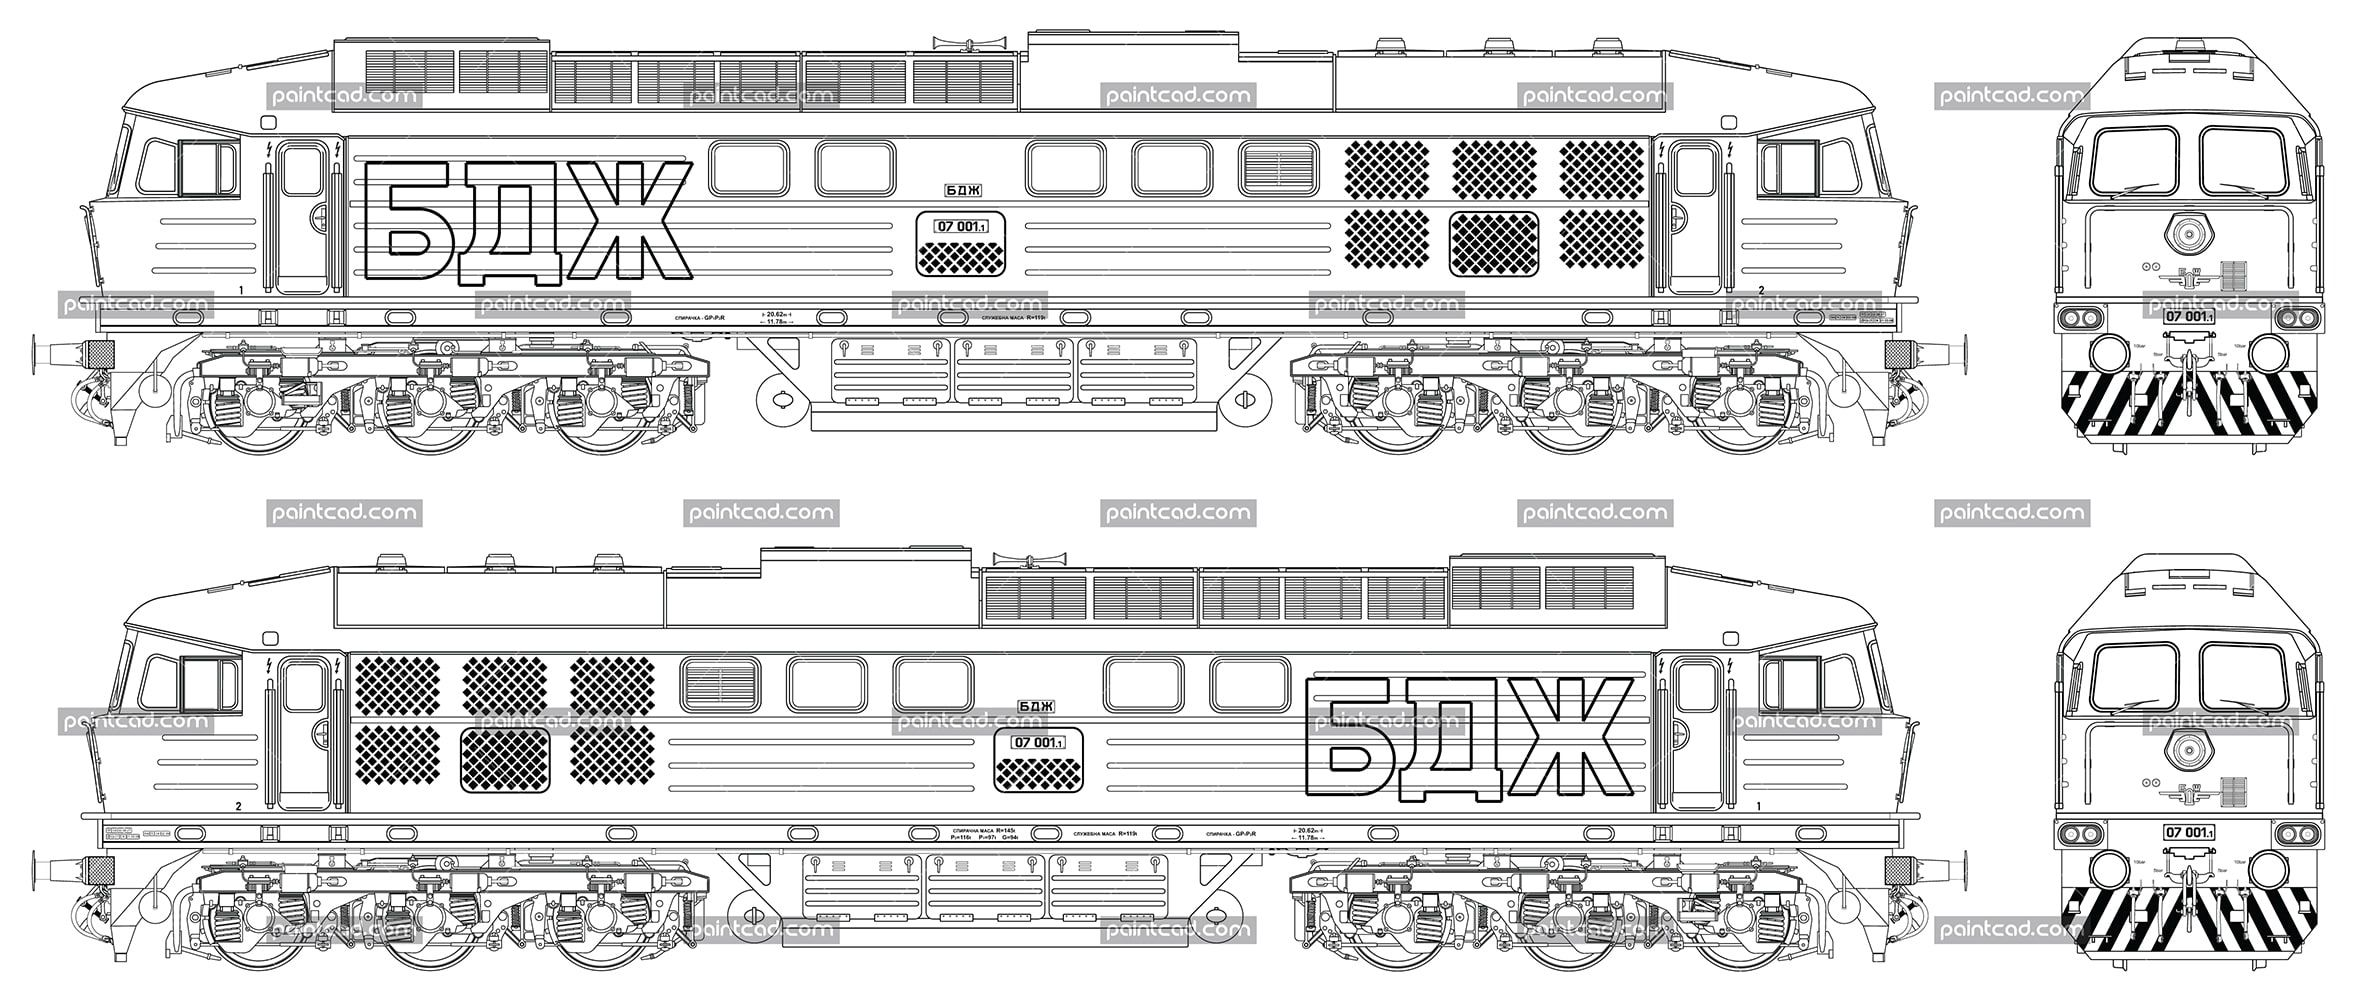 diagram of voroshilovgrad locomotive luhanskteplovoz te 109diagram of voroshilovgrad locomotive luhanskteplovoz te 109